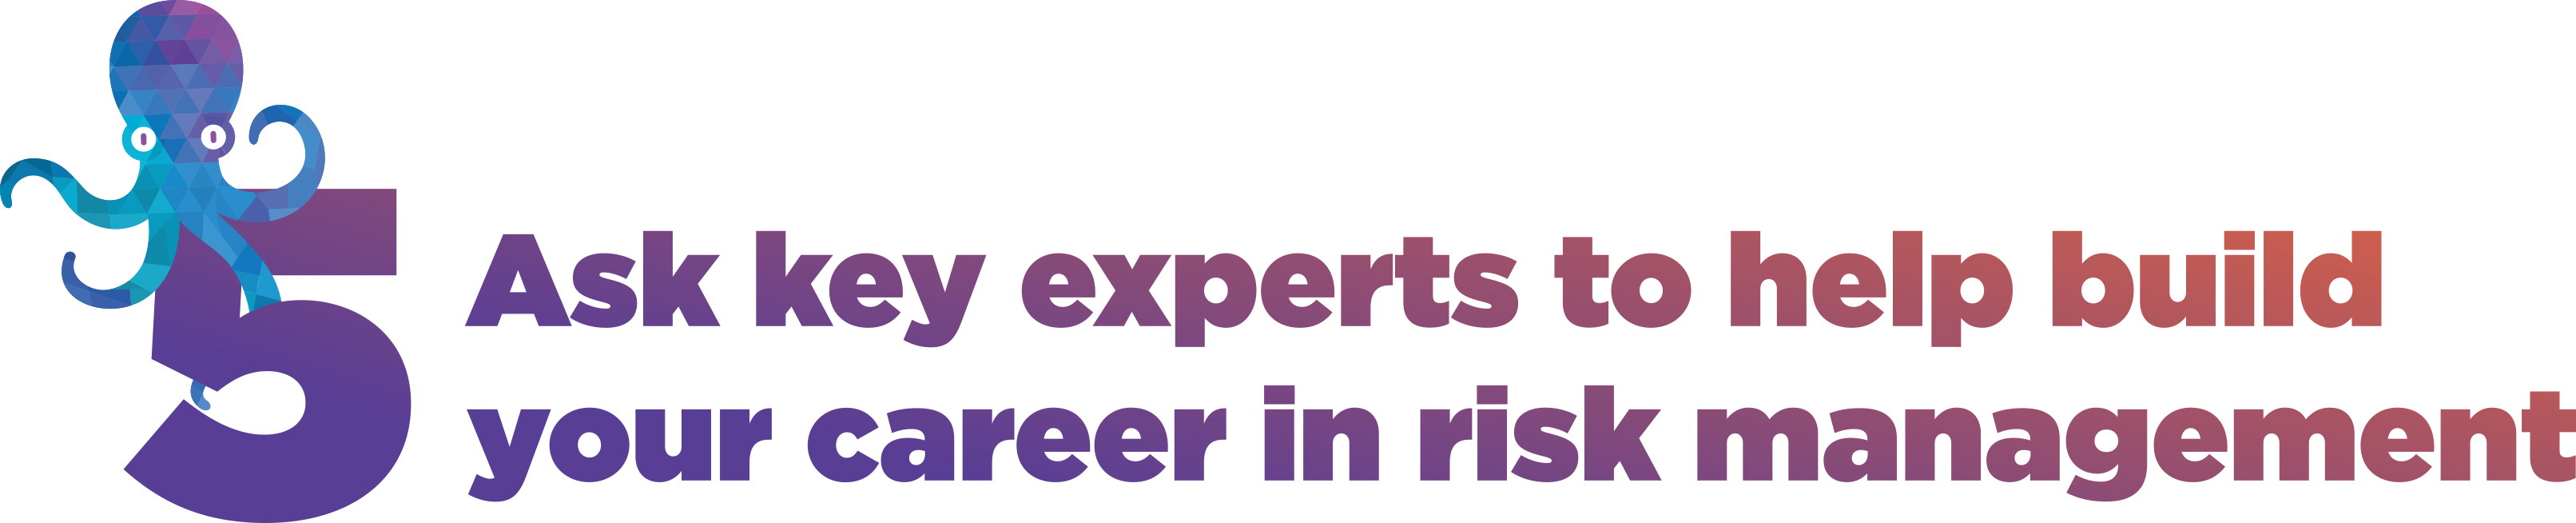 5. Meet key experts to help build your career